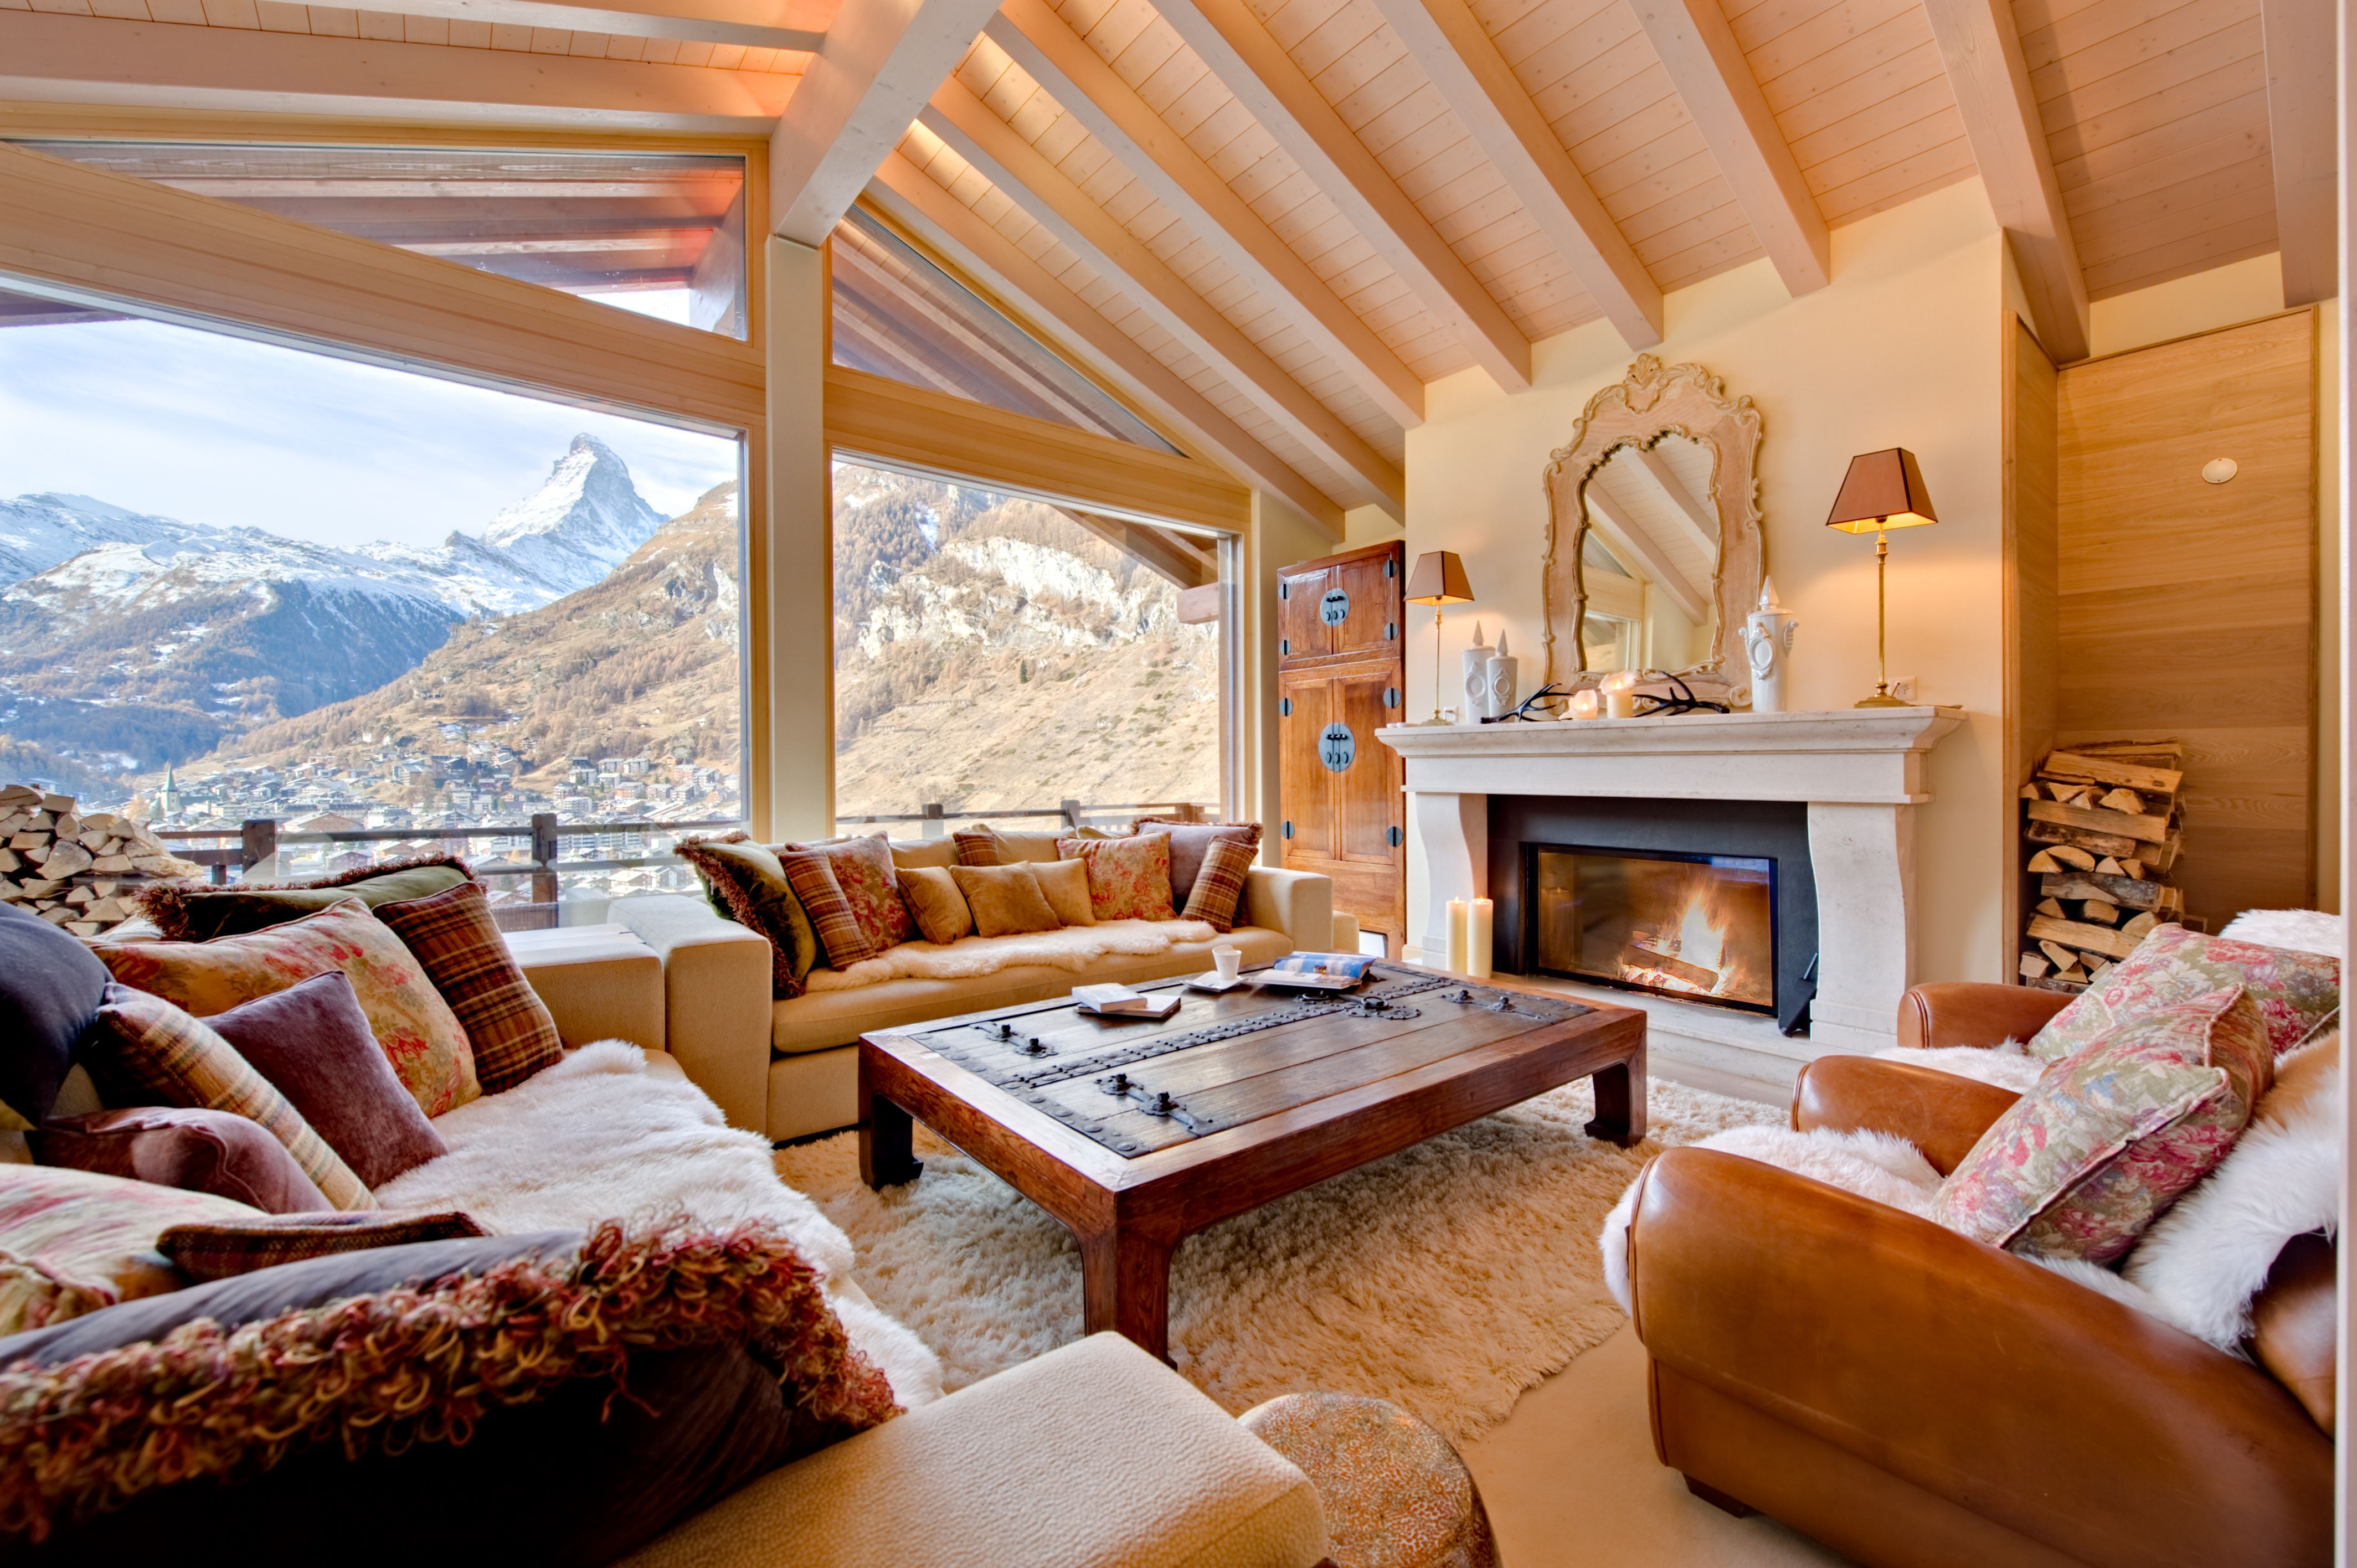 Luxury Chalets on Airbnb